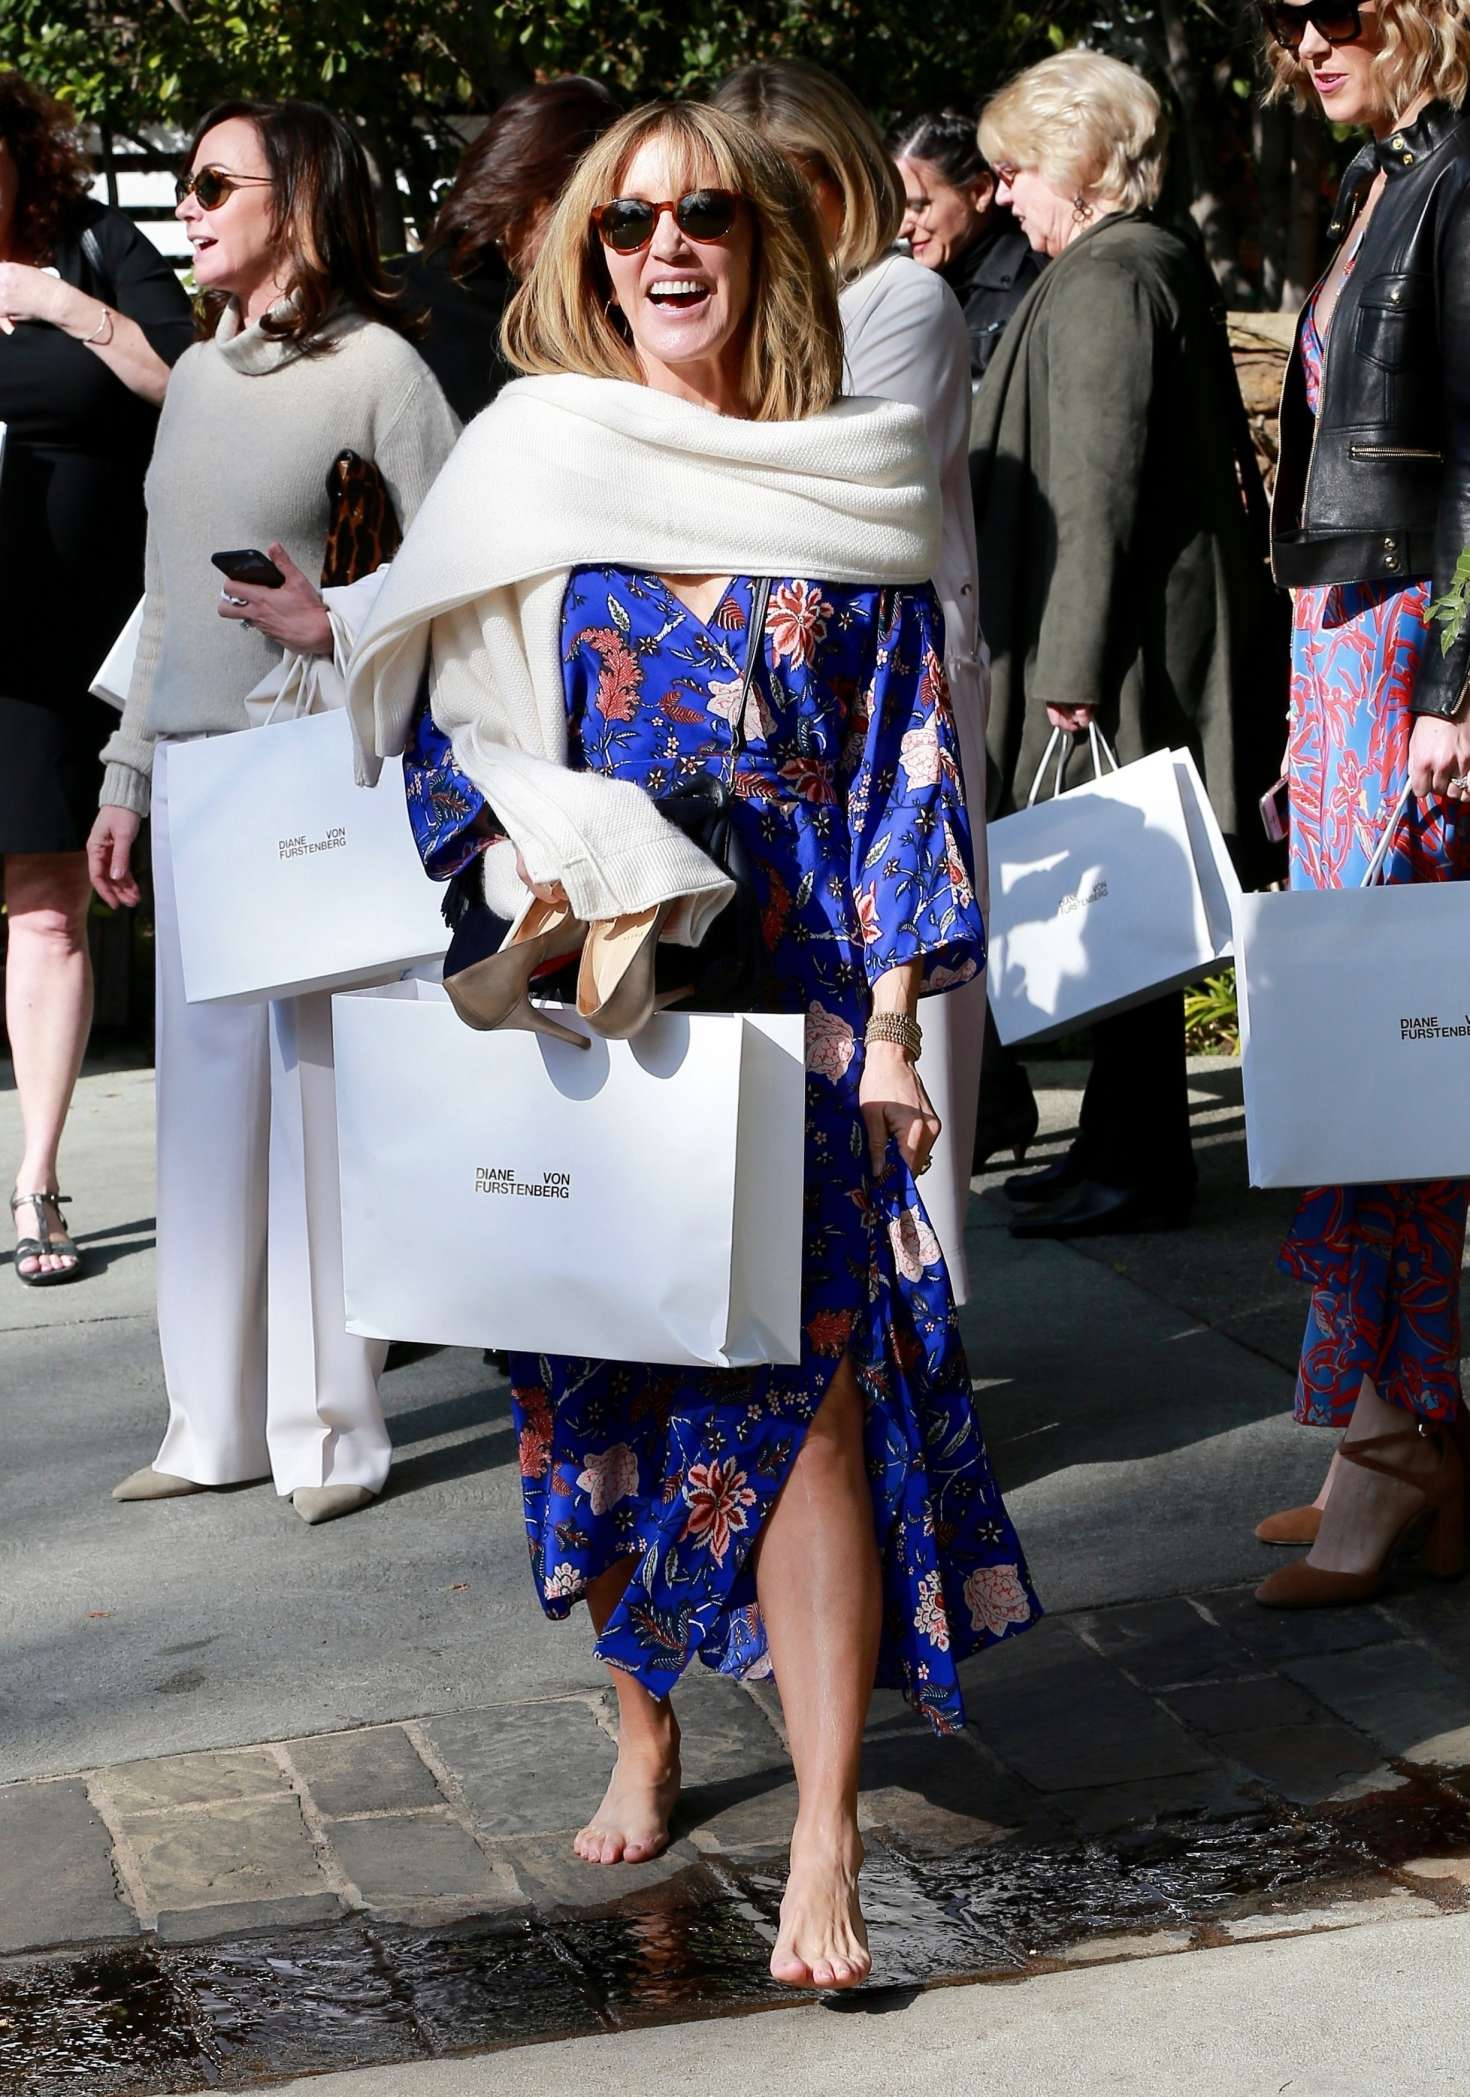 Felicity Huffman - Attends a Pre-Oscars Event in Beverly Hills